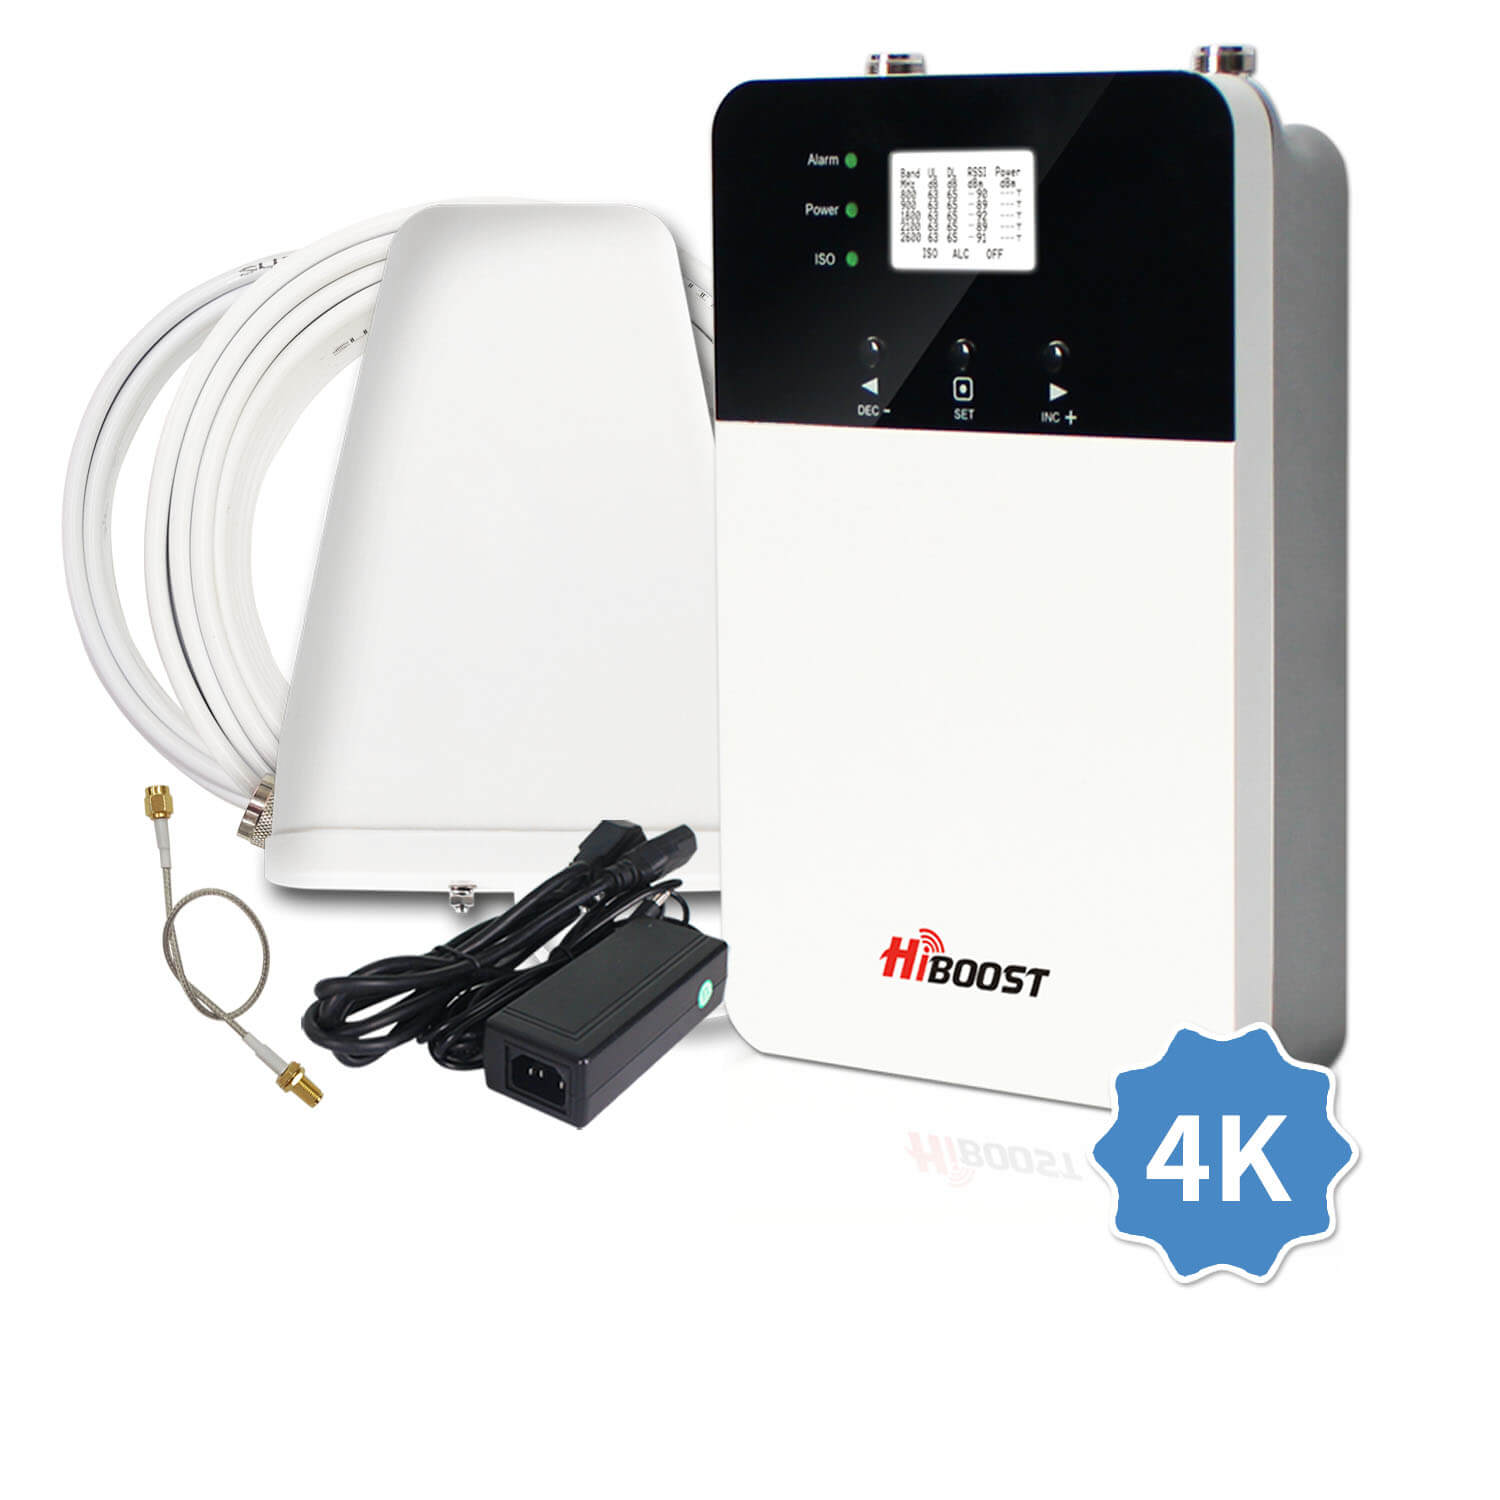 4K-Plus-Cell-Booster-1